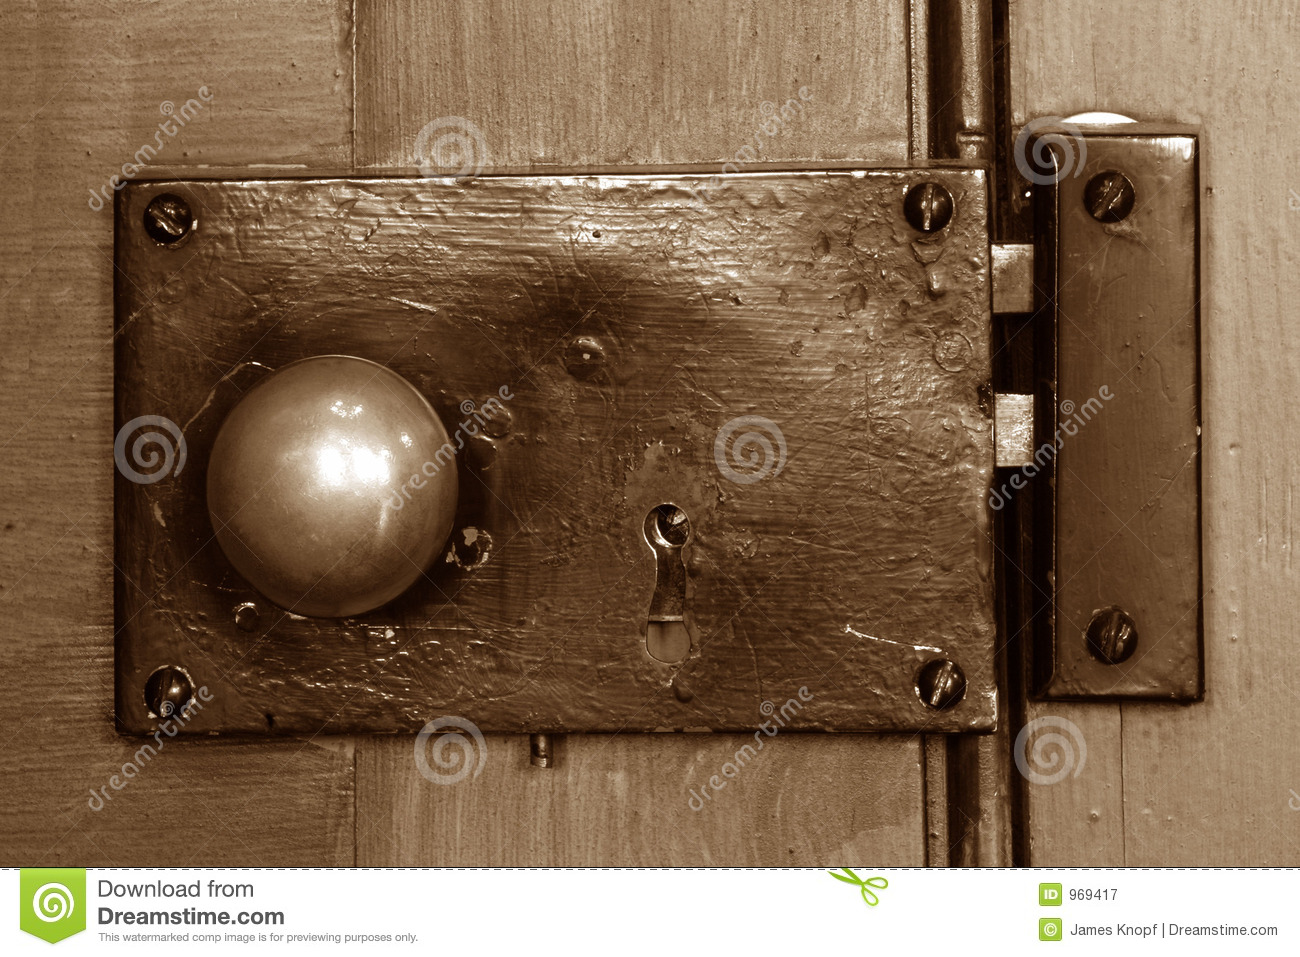 Lovely Royaltyfree Stock Photo Download Old Post Office Door Knob. Vintage .